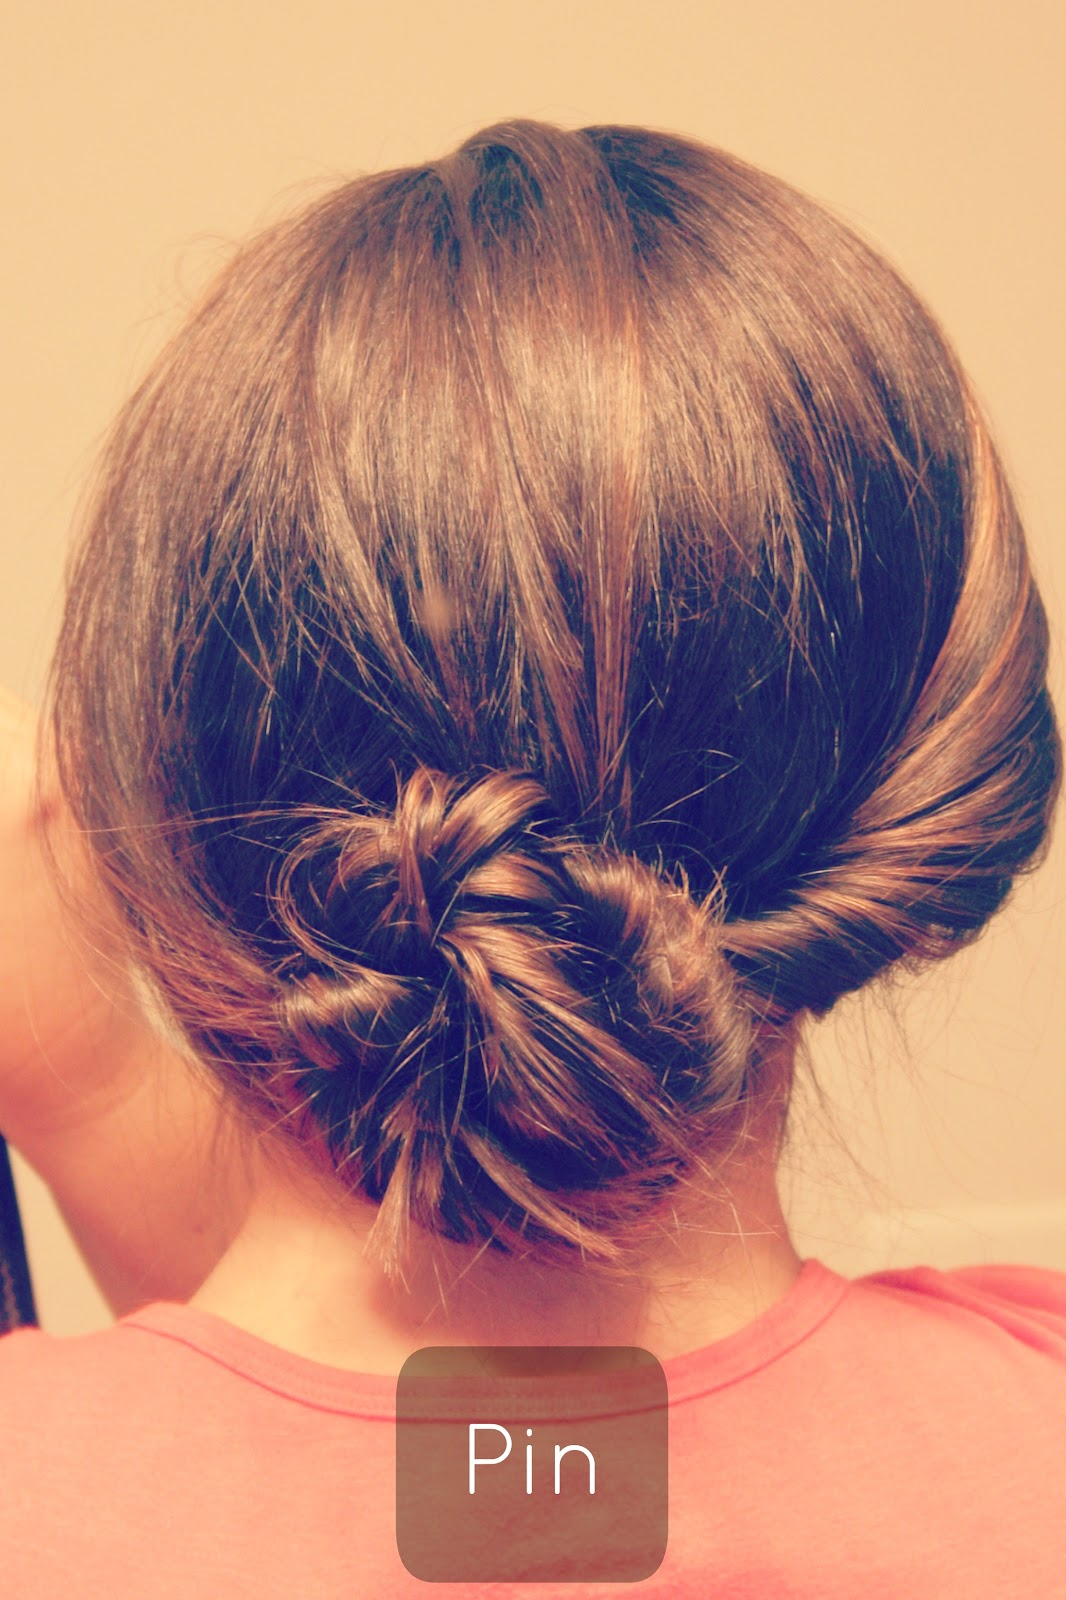 Quick Hairstyles For Short Hair No Heat : flipped+bun+pony+no+heat+hairstyles+quick+fast+easy+updo.jpg